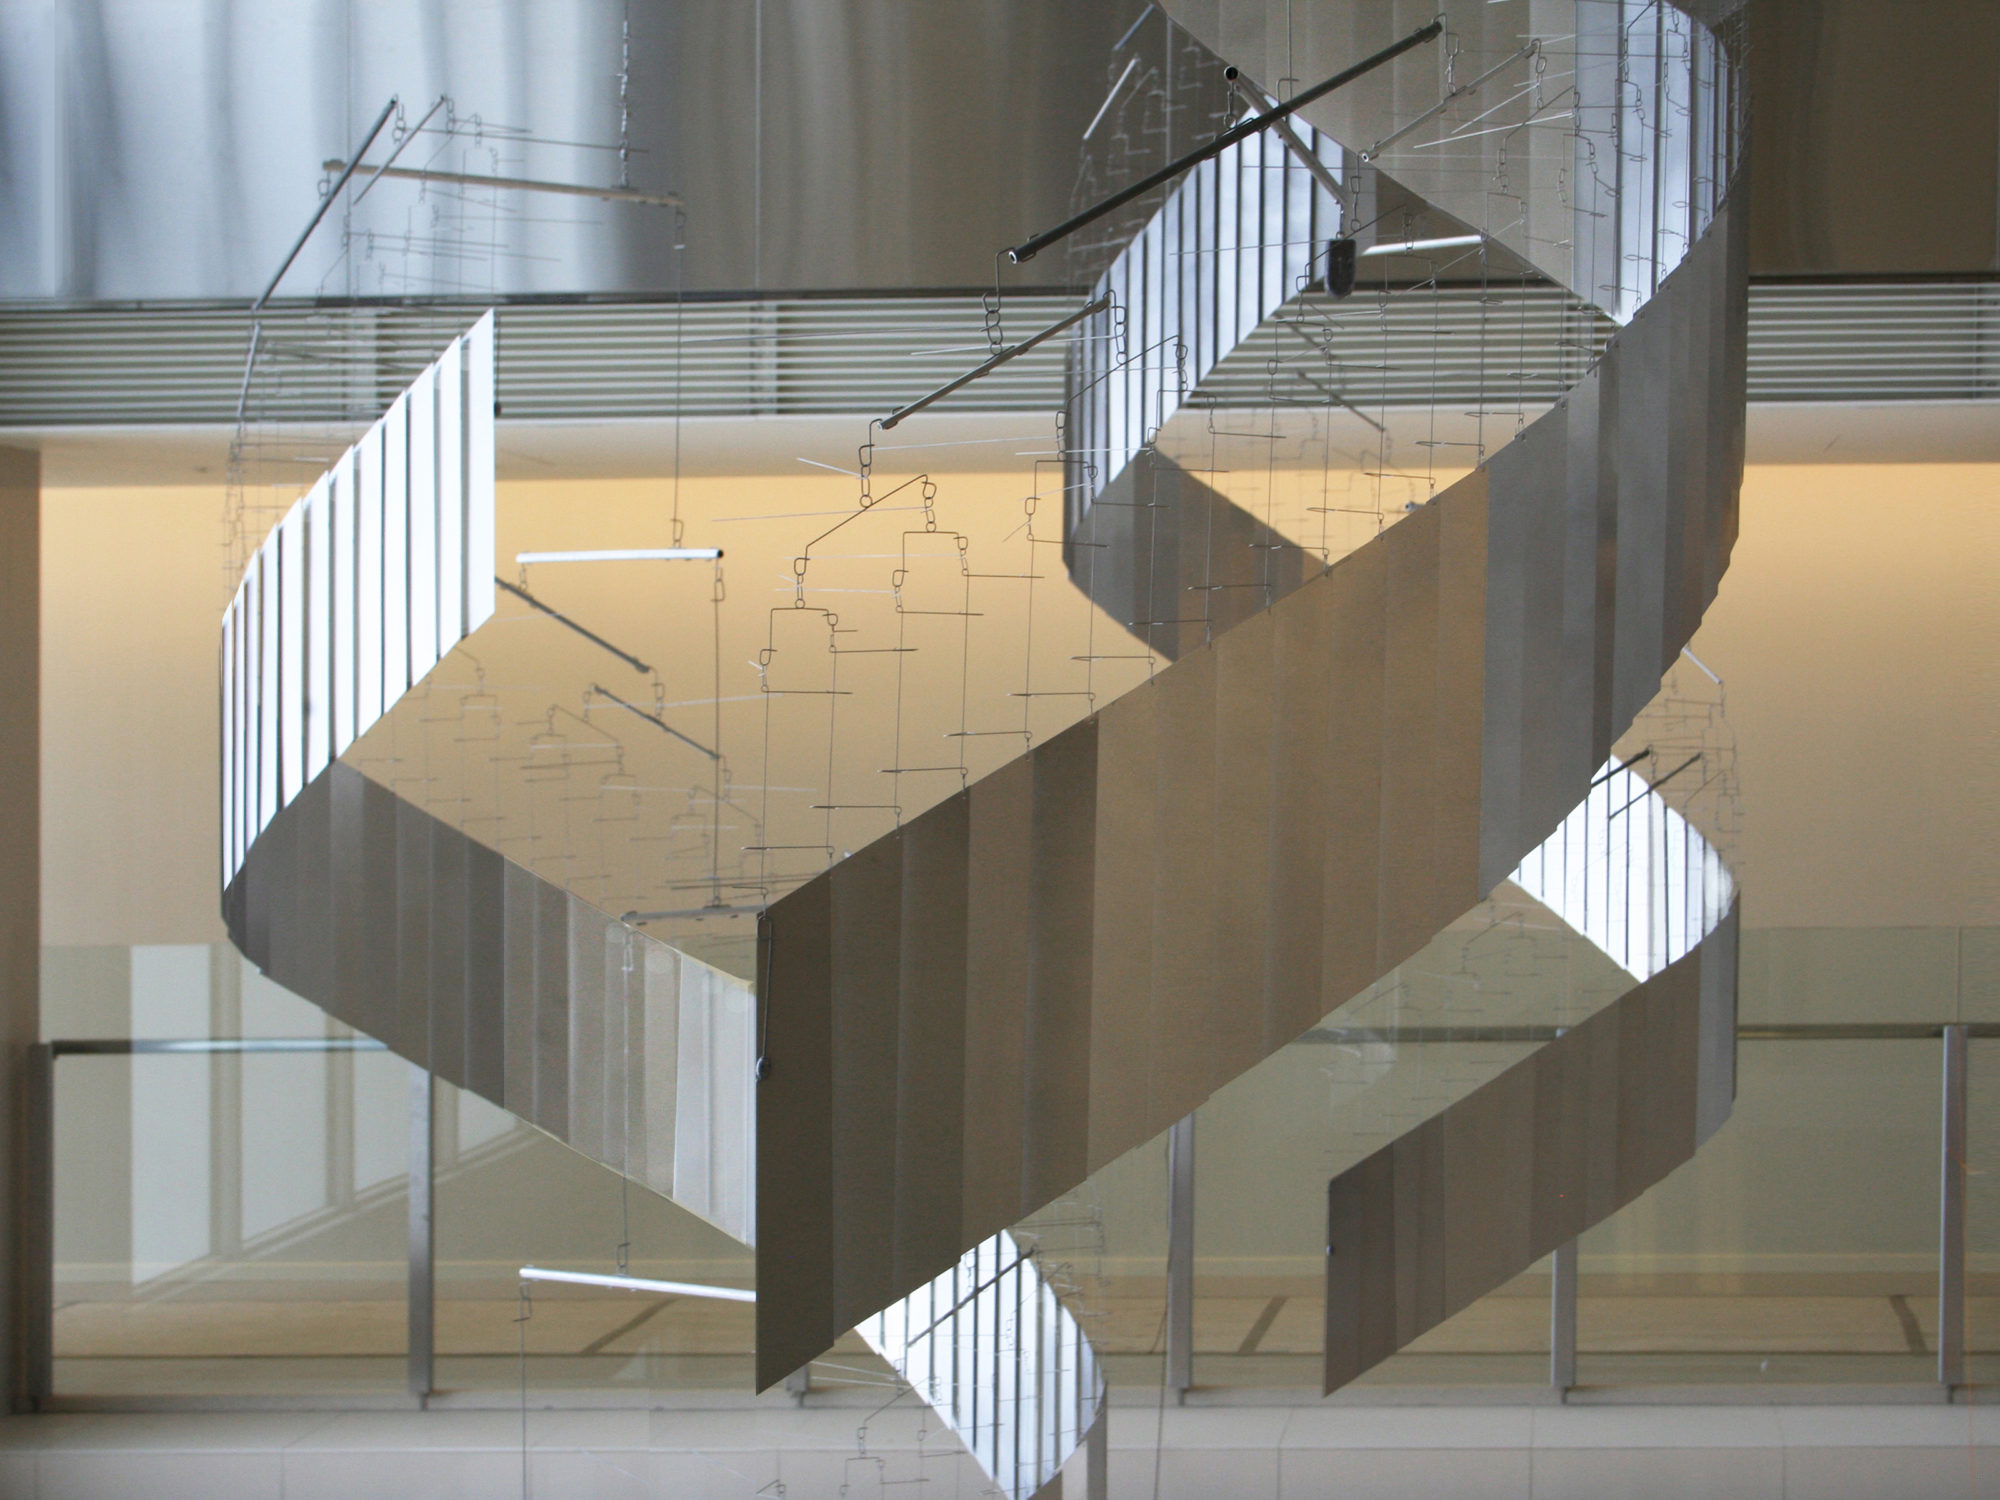 Suspended sculptures in an interior space that are curved and spiraling downwards in shining silver steel.